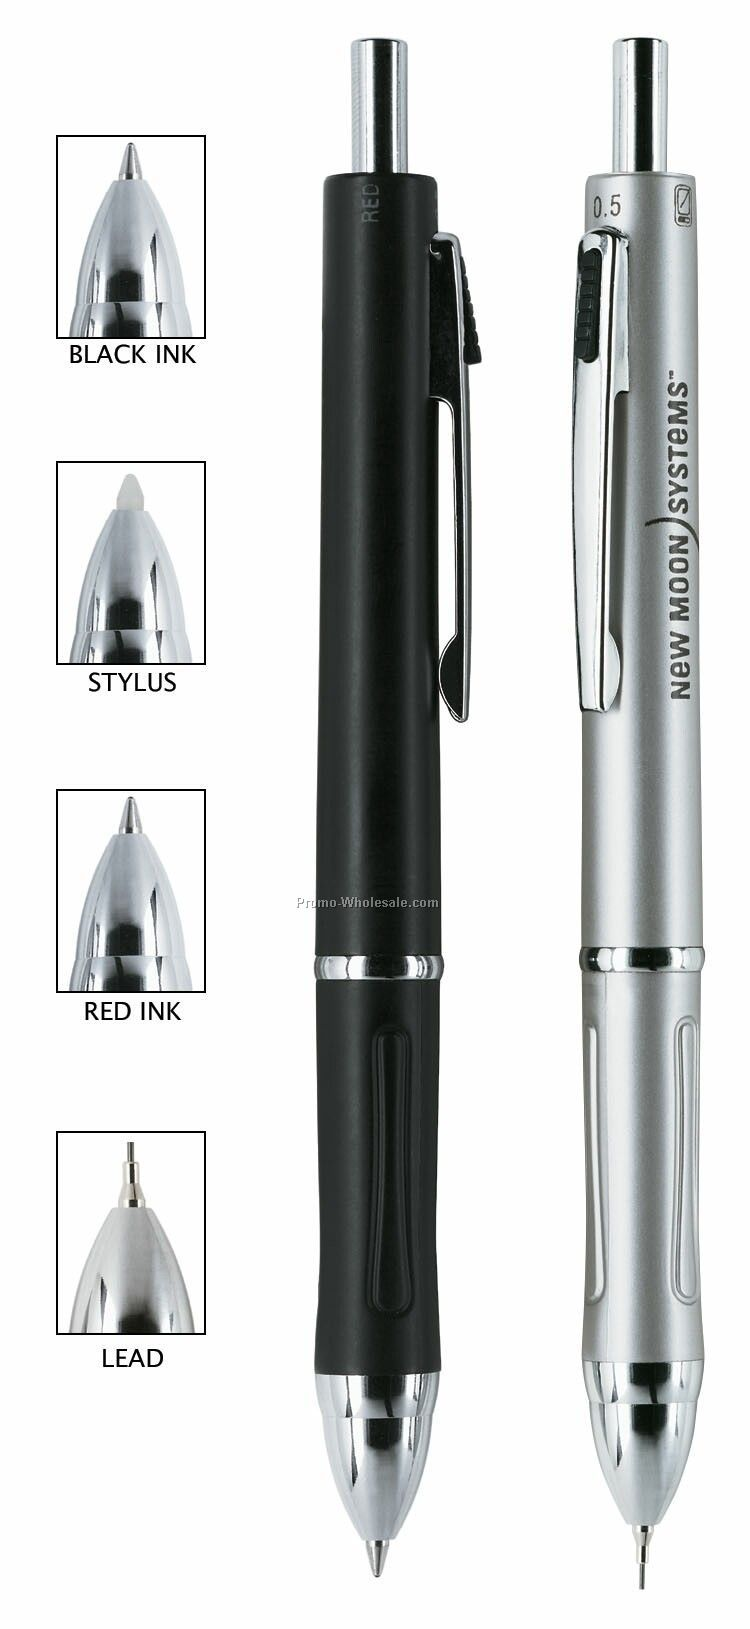 Silver 4-in-1 Creighton Ballpoint Pen/ Pencil/ Stylus